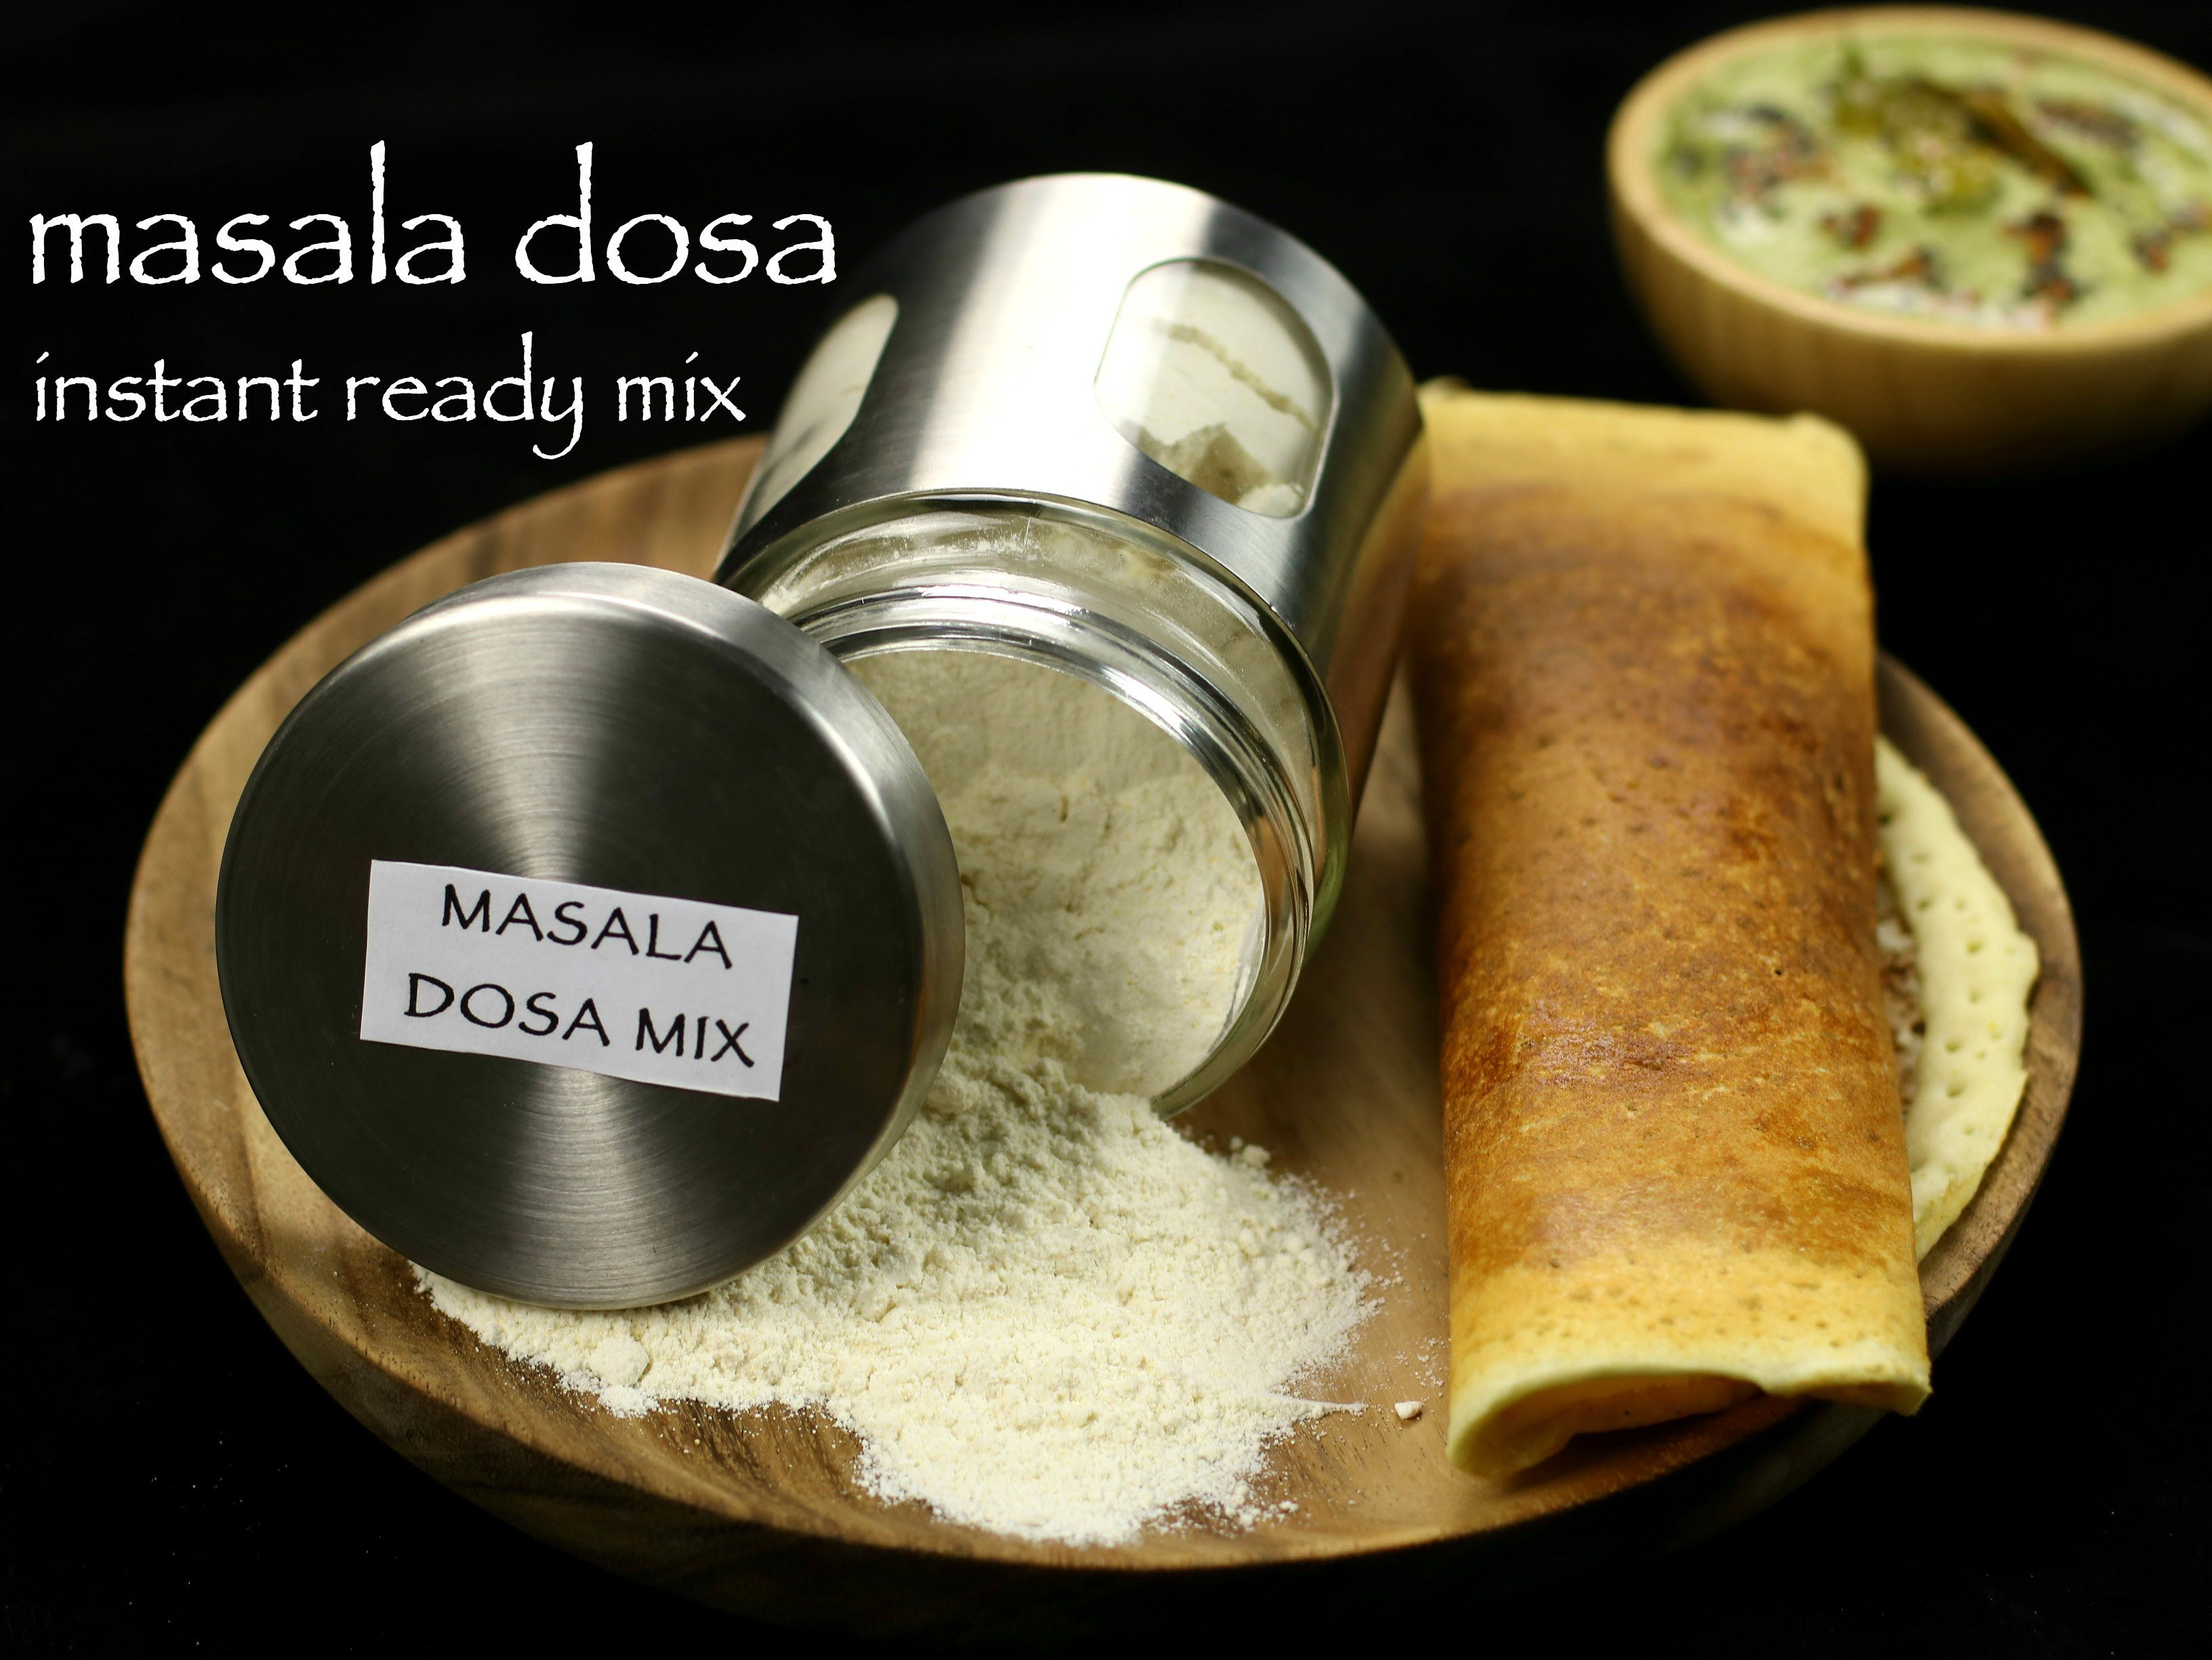 Masala dosa mix recipe instant ready mix masala dosa recipe masala dosa mix recipe instant ready mix masala dosa recipe indian kitchendesi foodindian forumfinder Gallery